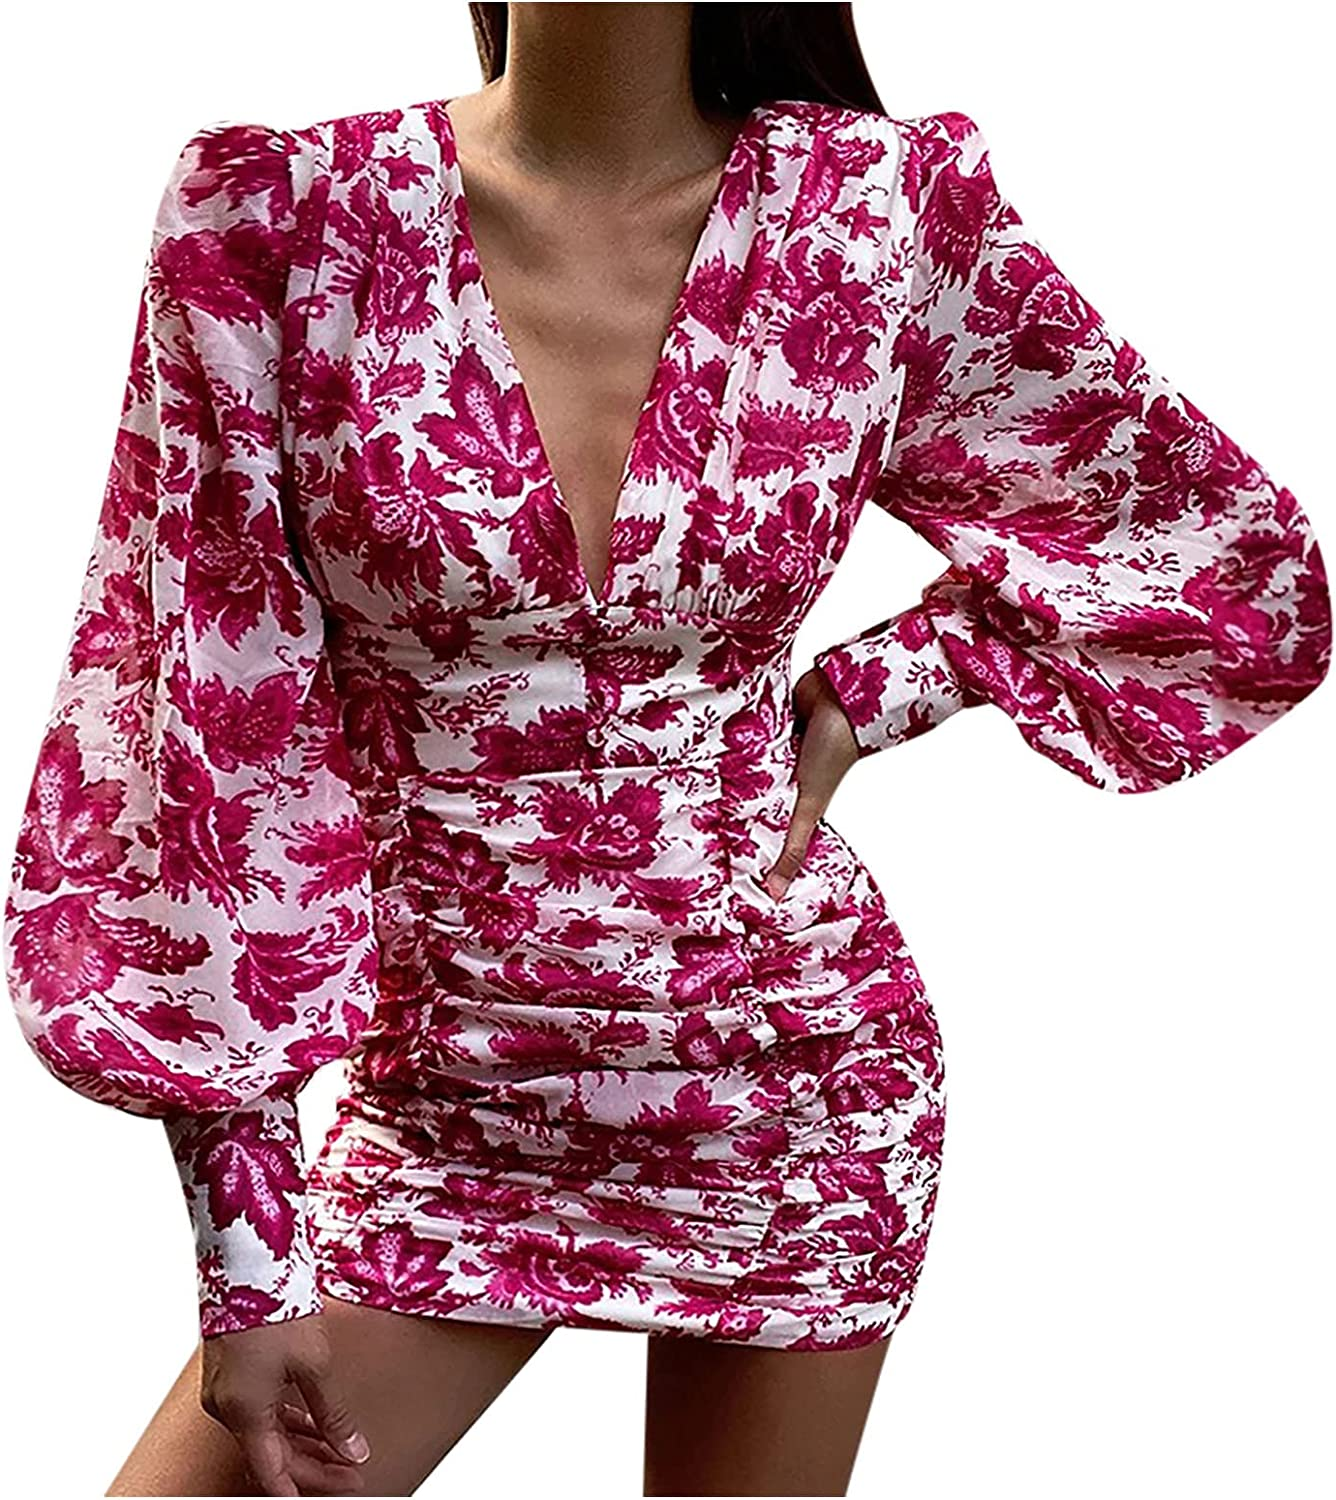 GCETTIC Dresses for Womens, Casual Women's Tie Dye Print Tight Dress V-Neck Long Sleeve Cocktail Wedding Party Mini Dress